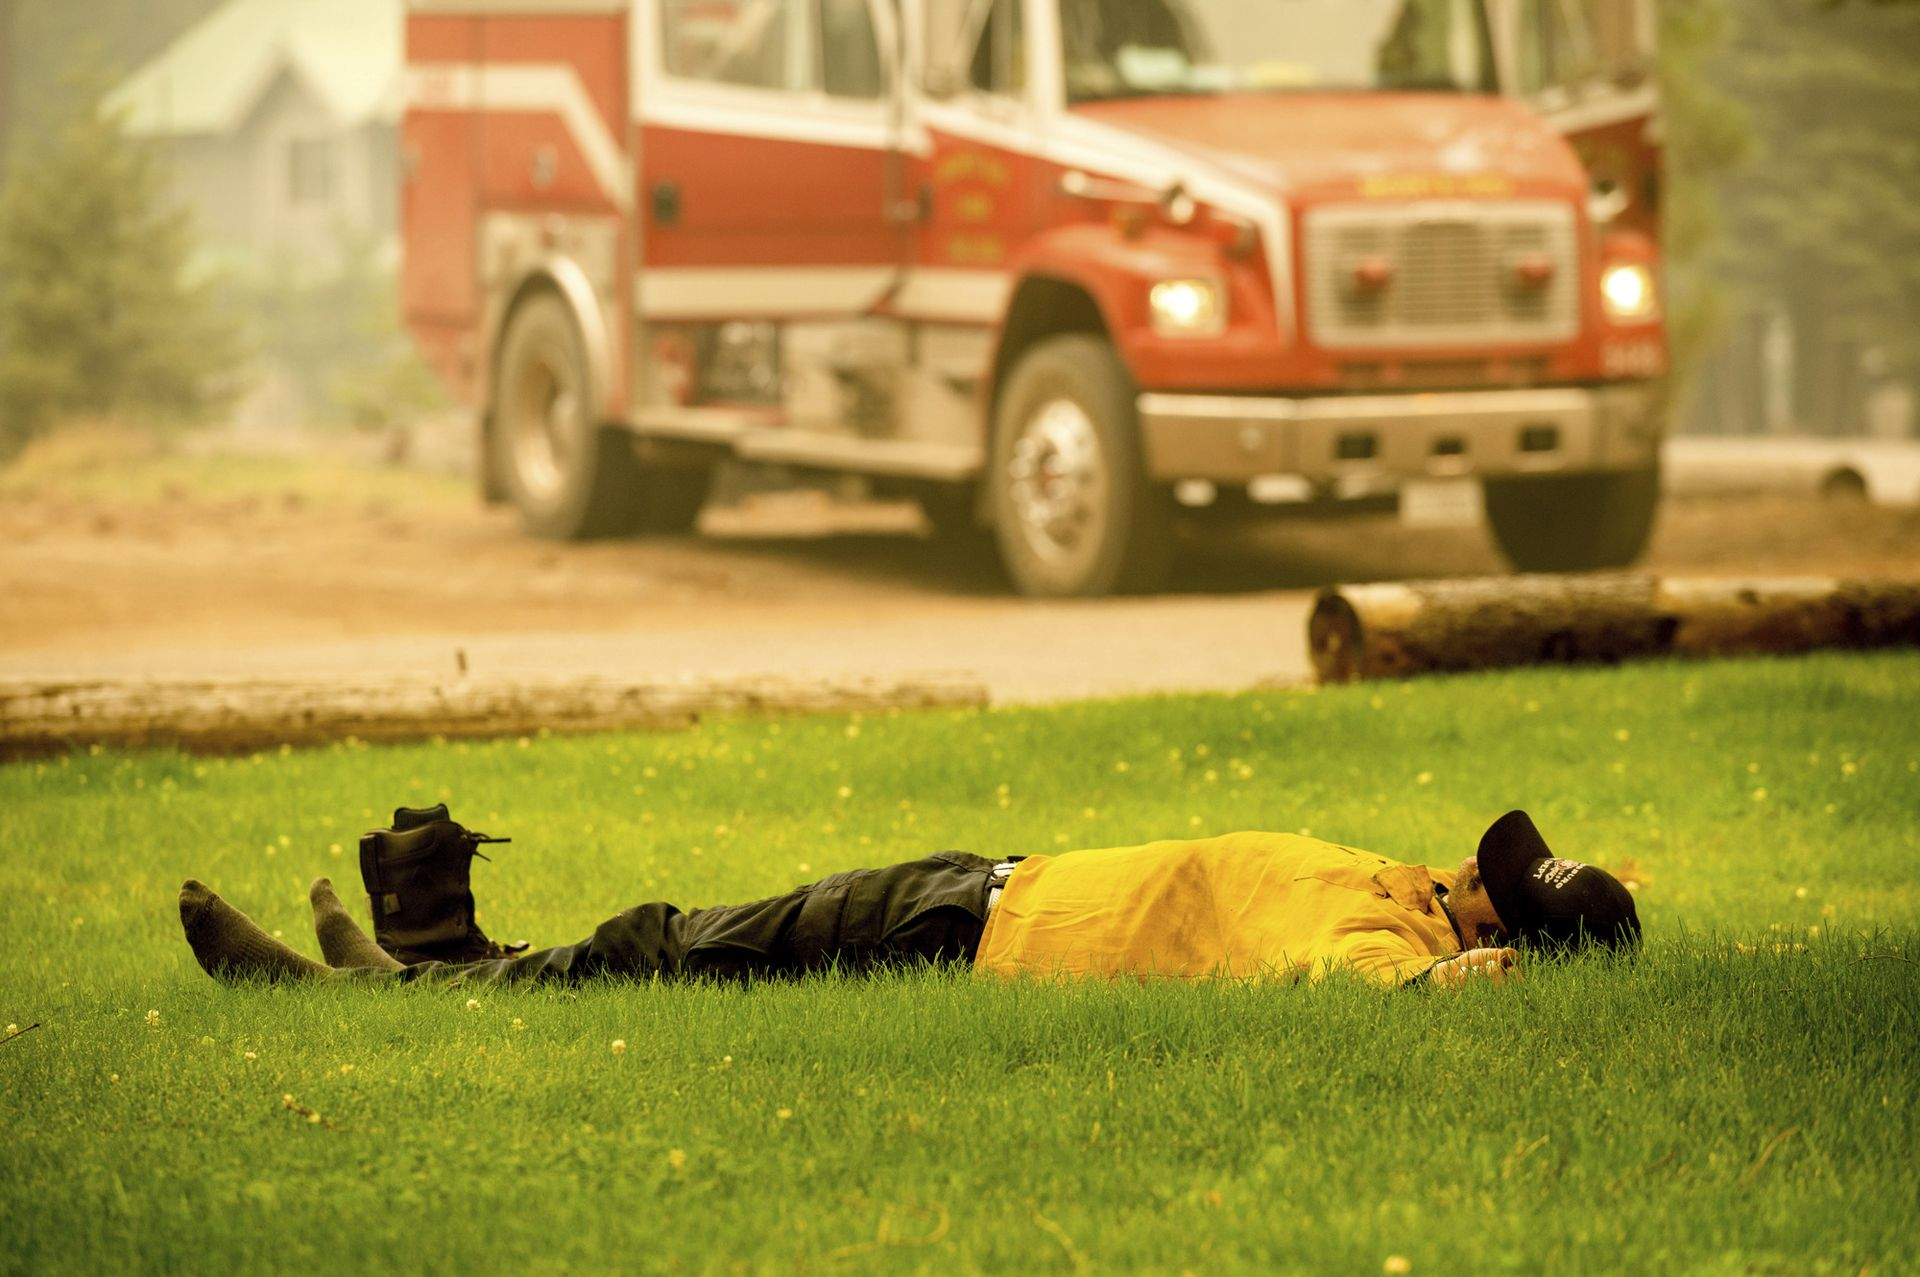 Healdsburg firefighter Justin Potter rests as his team prepares to fight the Dixie Fire in the Clear Creek community of Lassen County, California